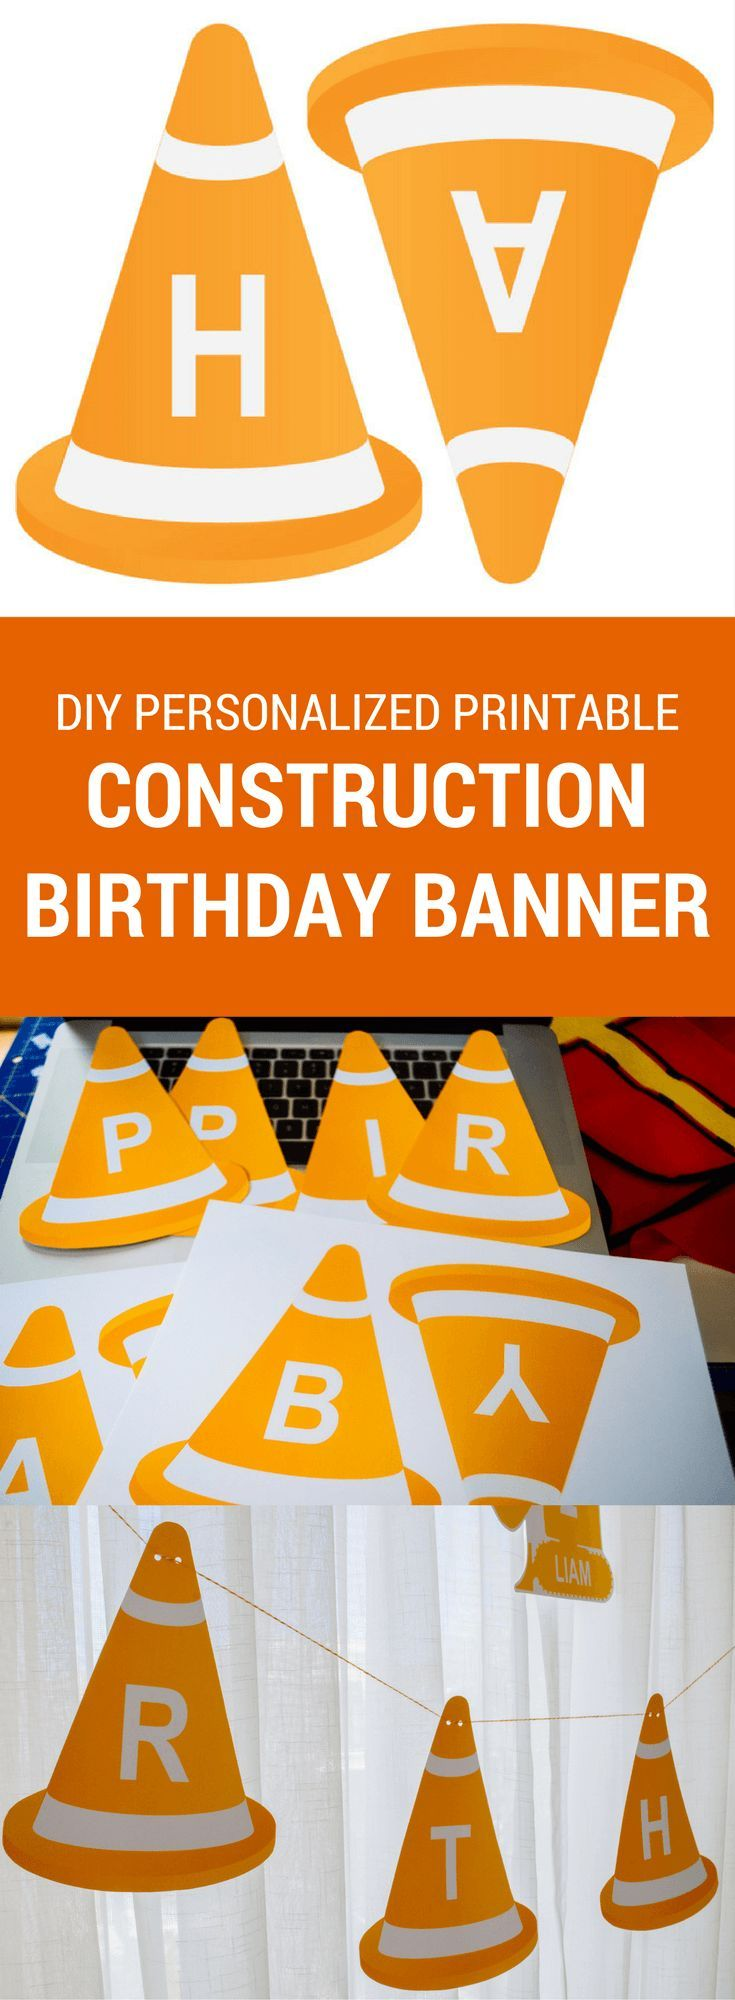 Personalized printable construction happy birthday banner. Just download, print, cut and hang!